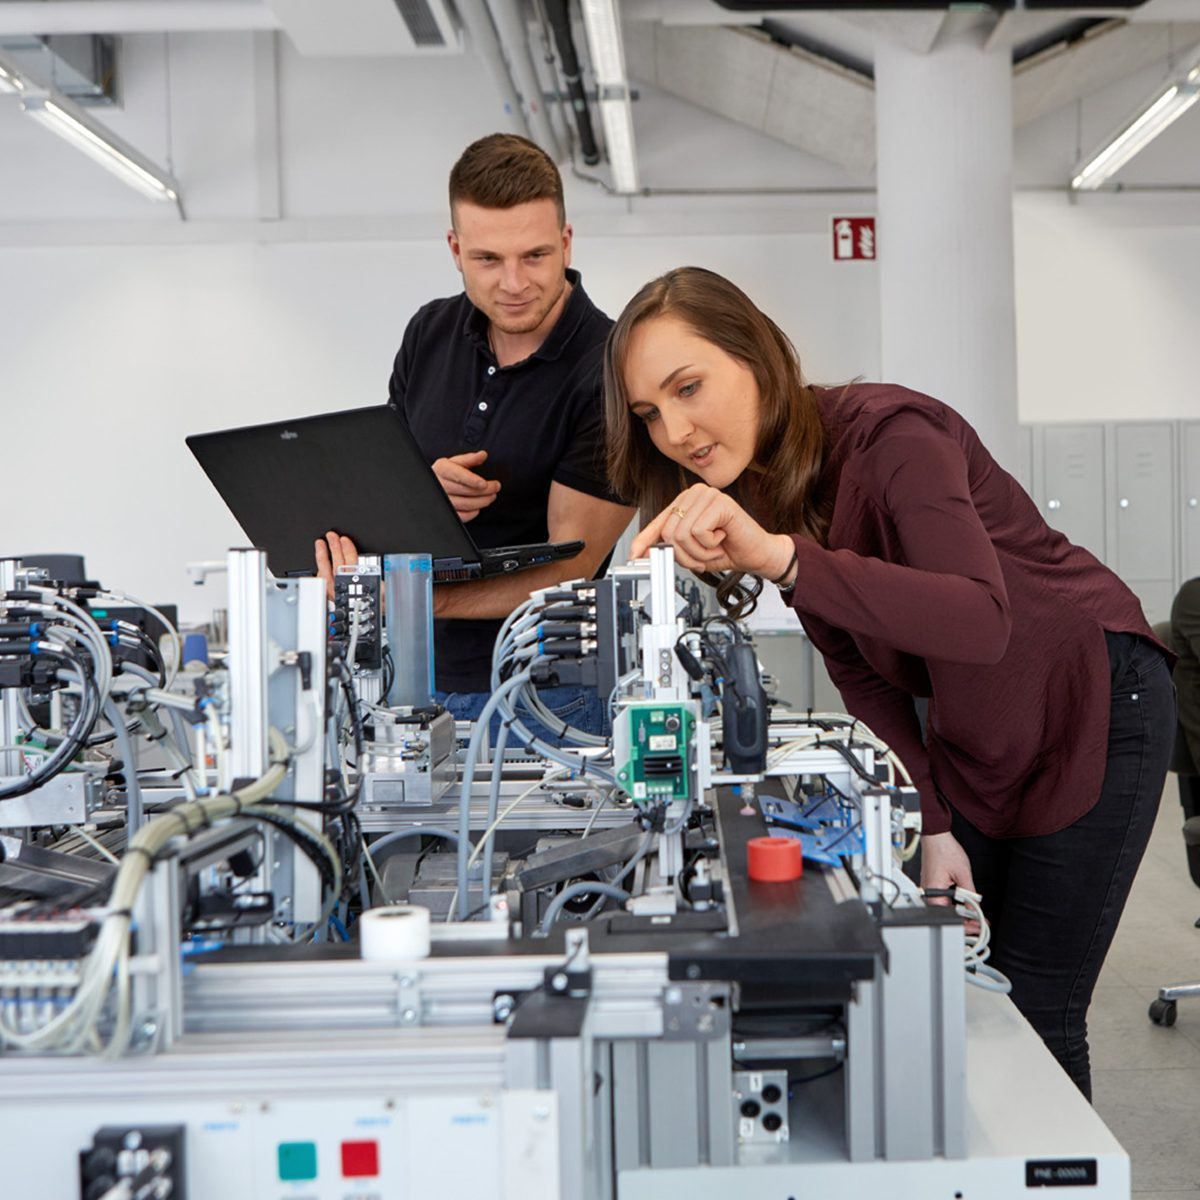 Apprenticeships And Dual Study Programs At Siemens Careers At Siemens Siemens Jobs Careers Global